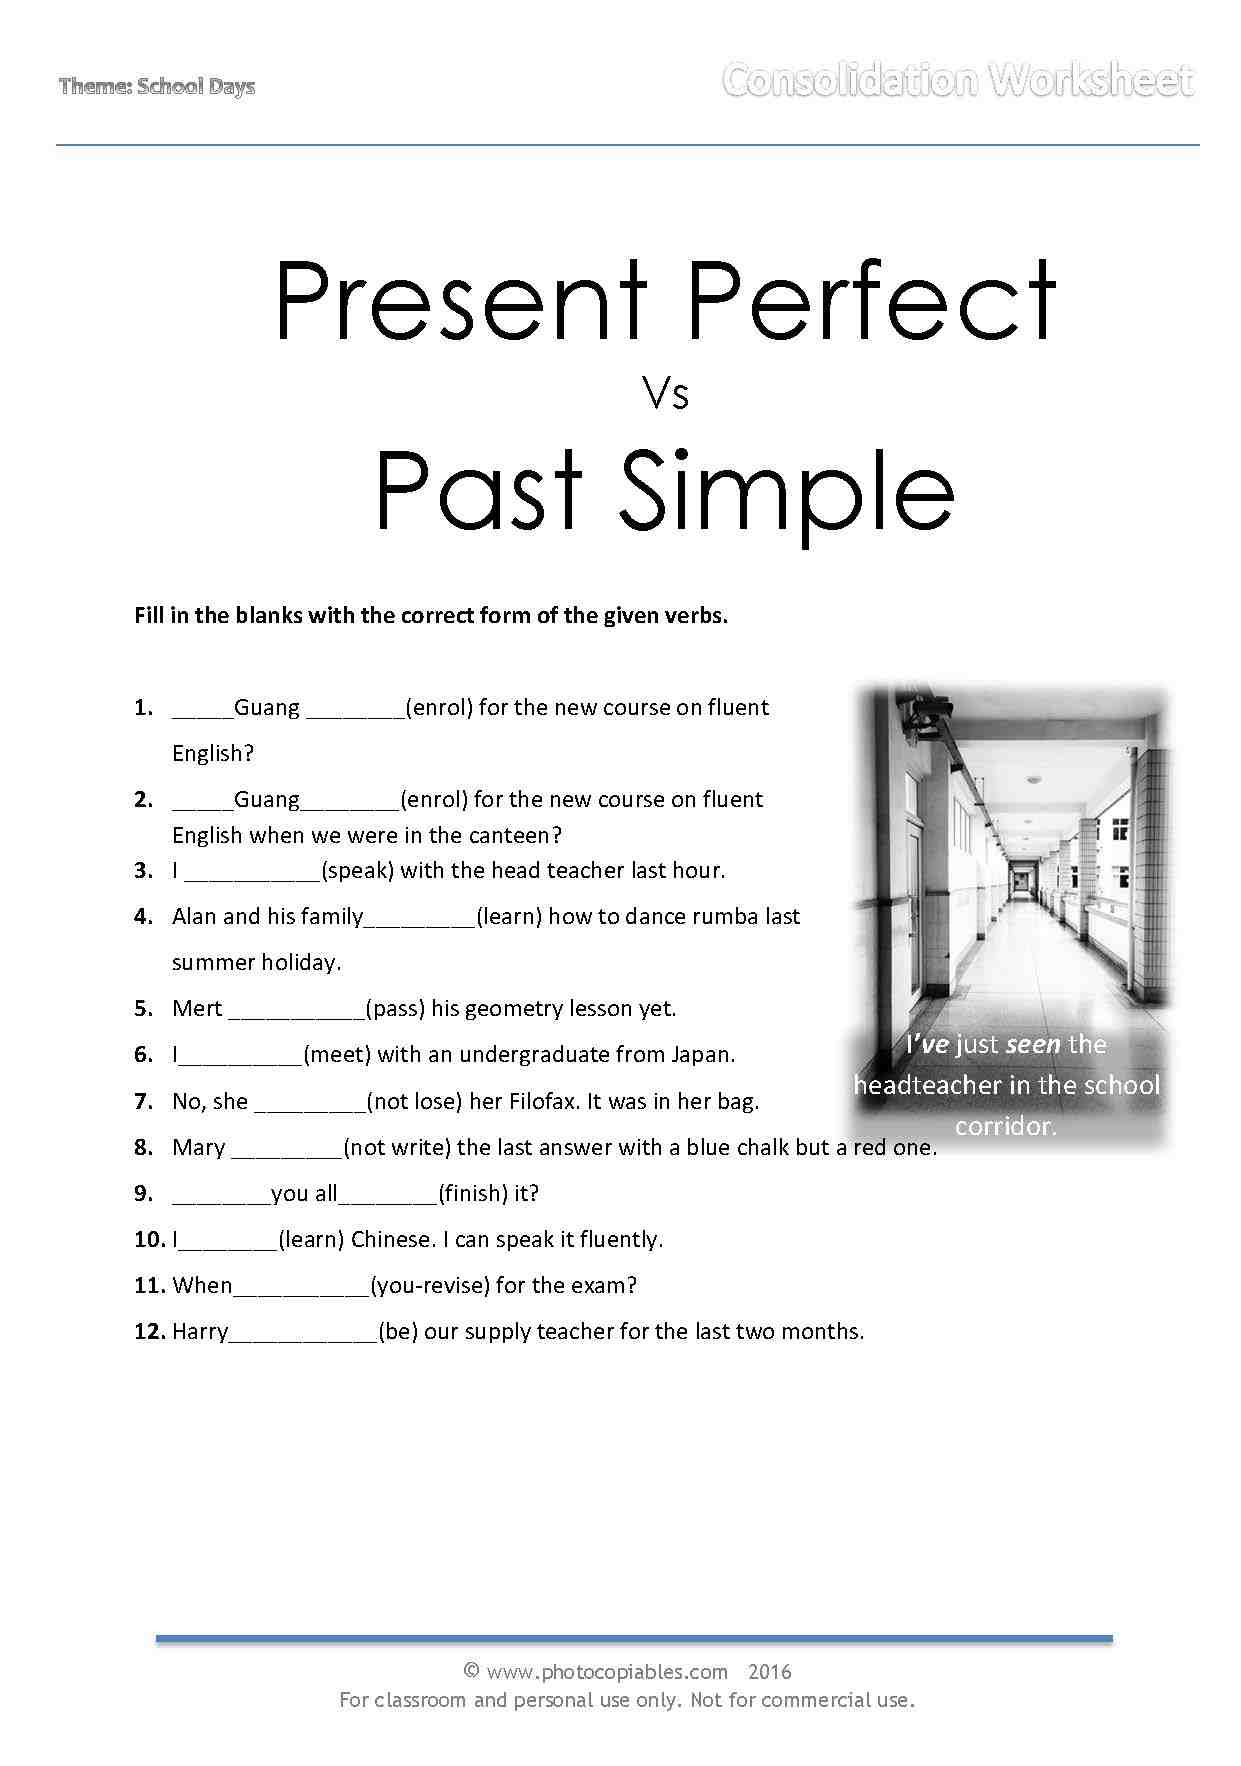 Forms Of Irregular Verbs Past Tense Worksheet Lesson Pla  Related likewise Past And Present Family Life Worksheets   Teaching Resources   TpT together with  besides  furthermore Fact Family Worksheets moreover esl simple past tense worksheets furthermore Present Perfect vs Past Simple Consolidation Online Exercise furthermore  furthermore Participle Worksheets Verbals 7th Grade Present Worksheet as well Family Worksheets for Kids   All Kids  work furthermore types of families worksheet   Google Search   Alphabet letters moreover Kindergarten Writing Prompt   My Family moreover Daily Life Then and Now Worksheet   Worksheet   Australian History in addition The family Interactive worksheets furthermore Teach This Worksheets   Create and Customise your own worksheets in addition . on families past and present worksheets